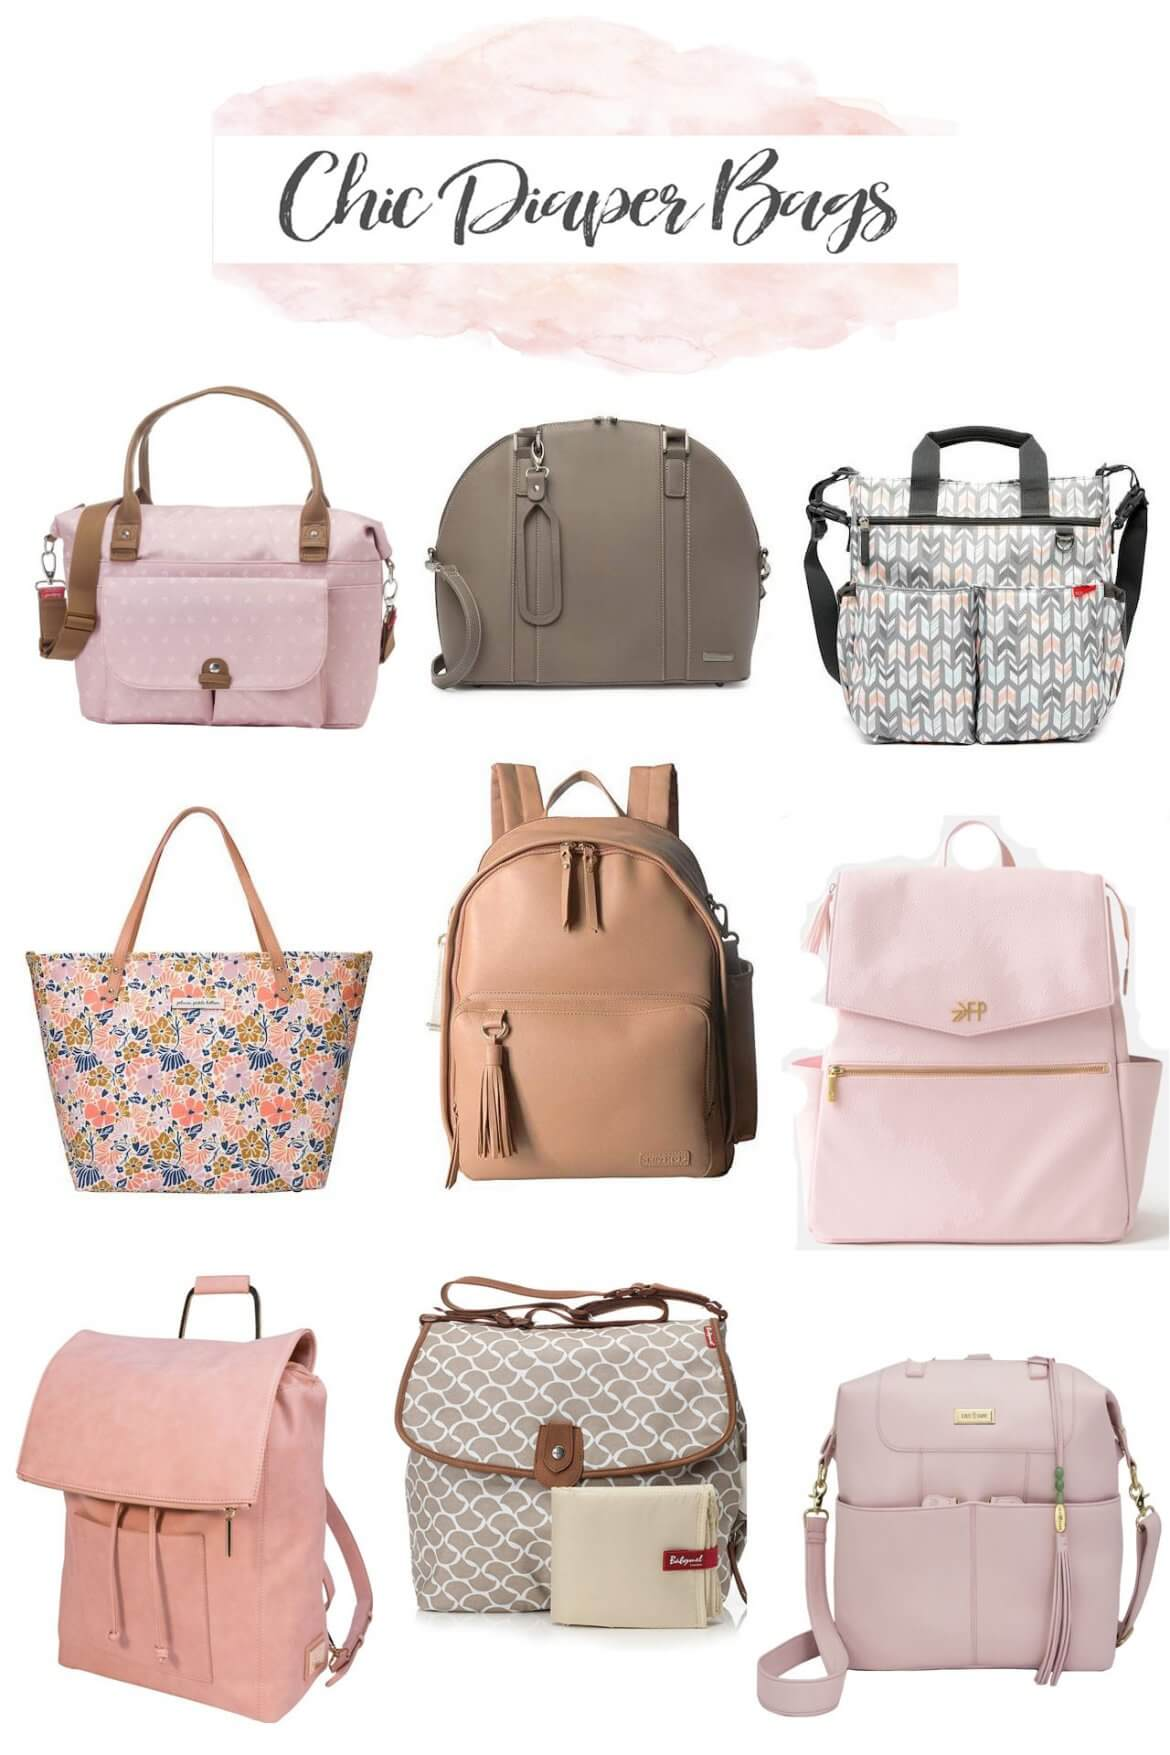 chic diaper bags for the stylish new mom